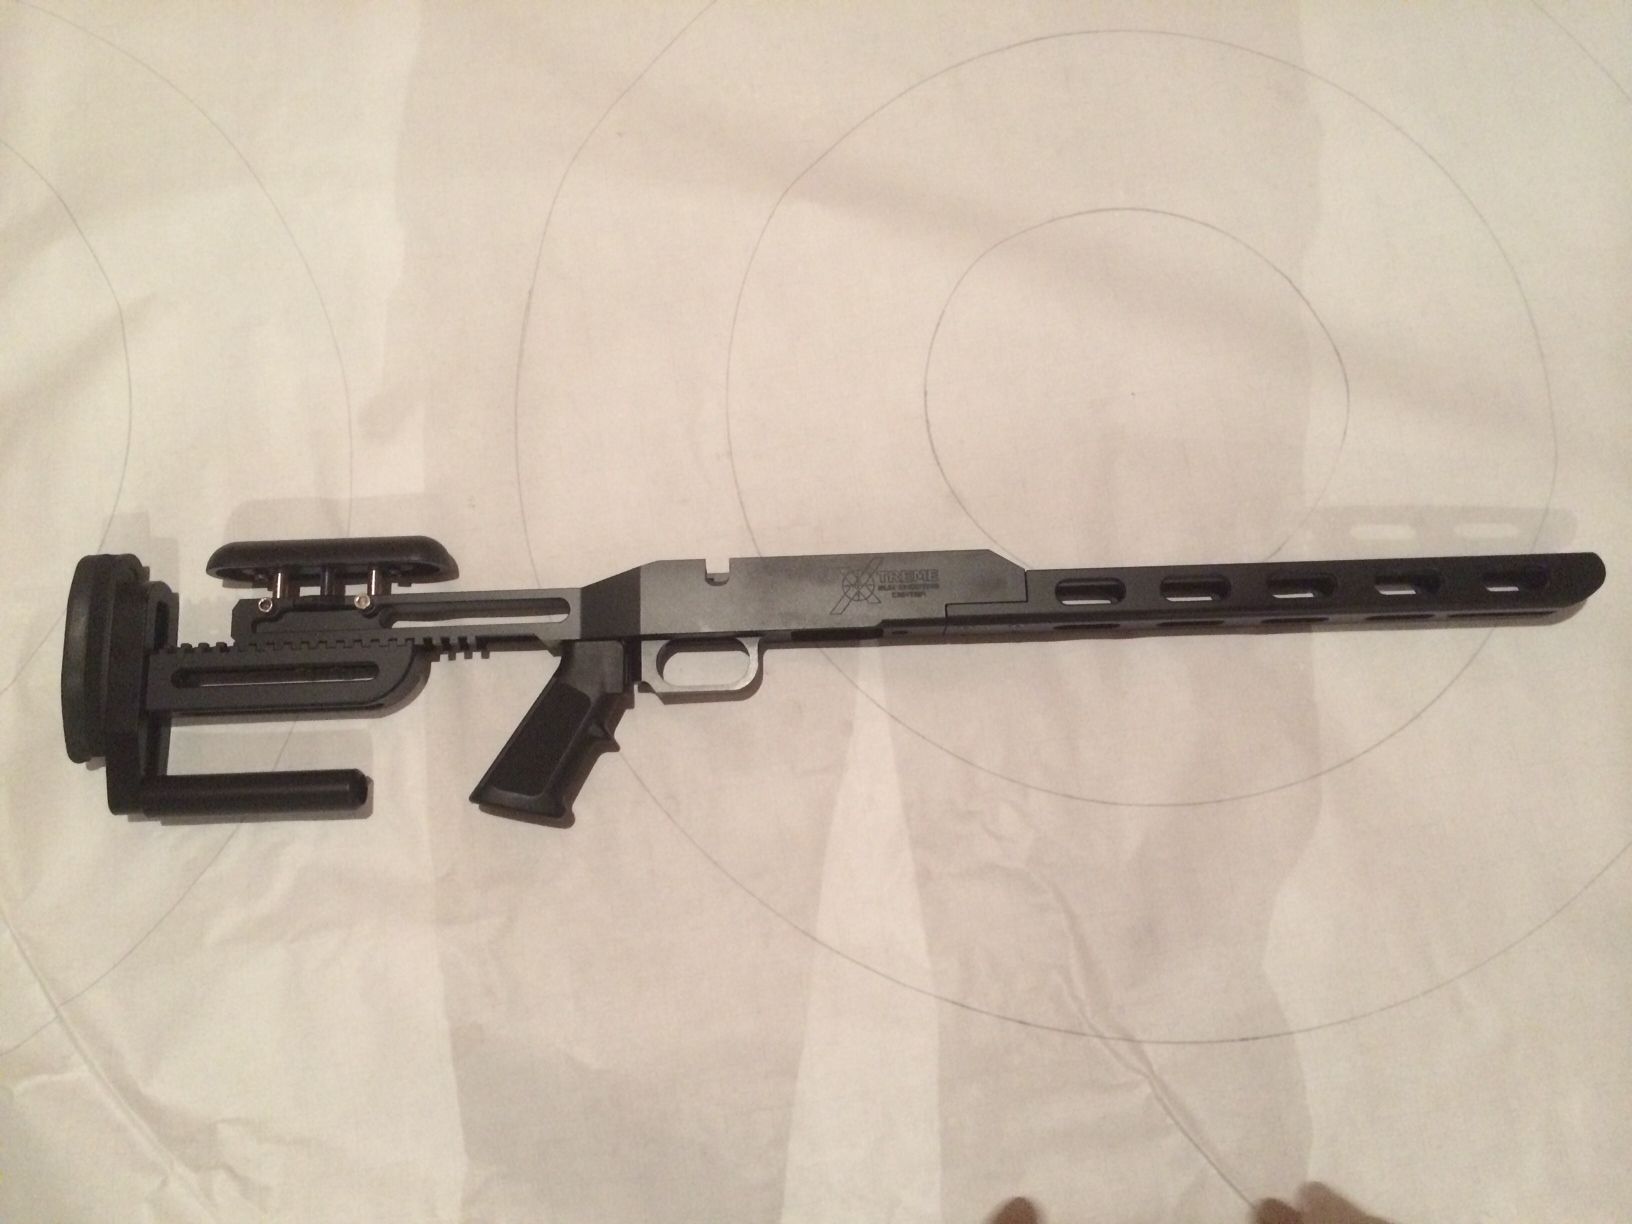 Xtreme Gun Remington 700 & Clones Chassis/Stock Single Shot